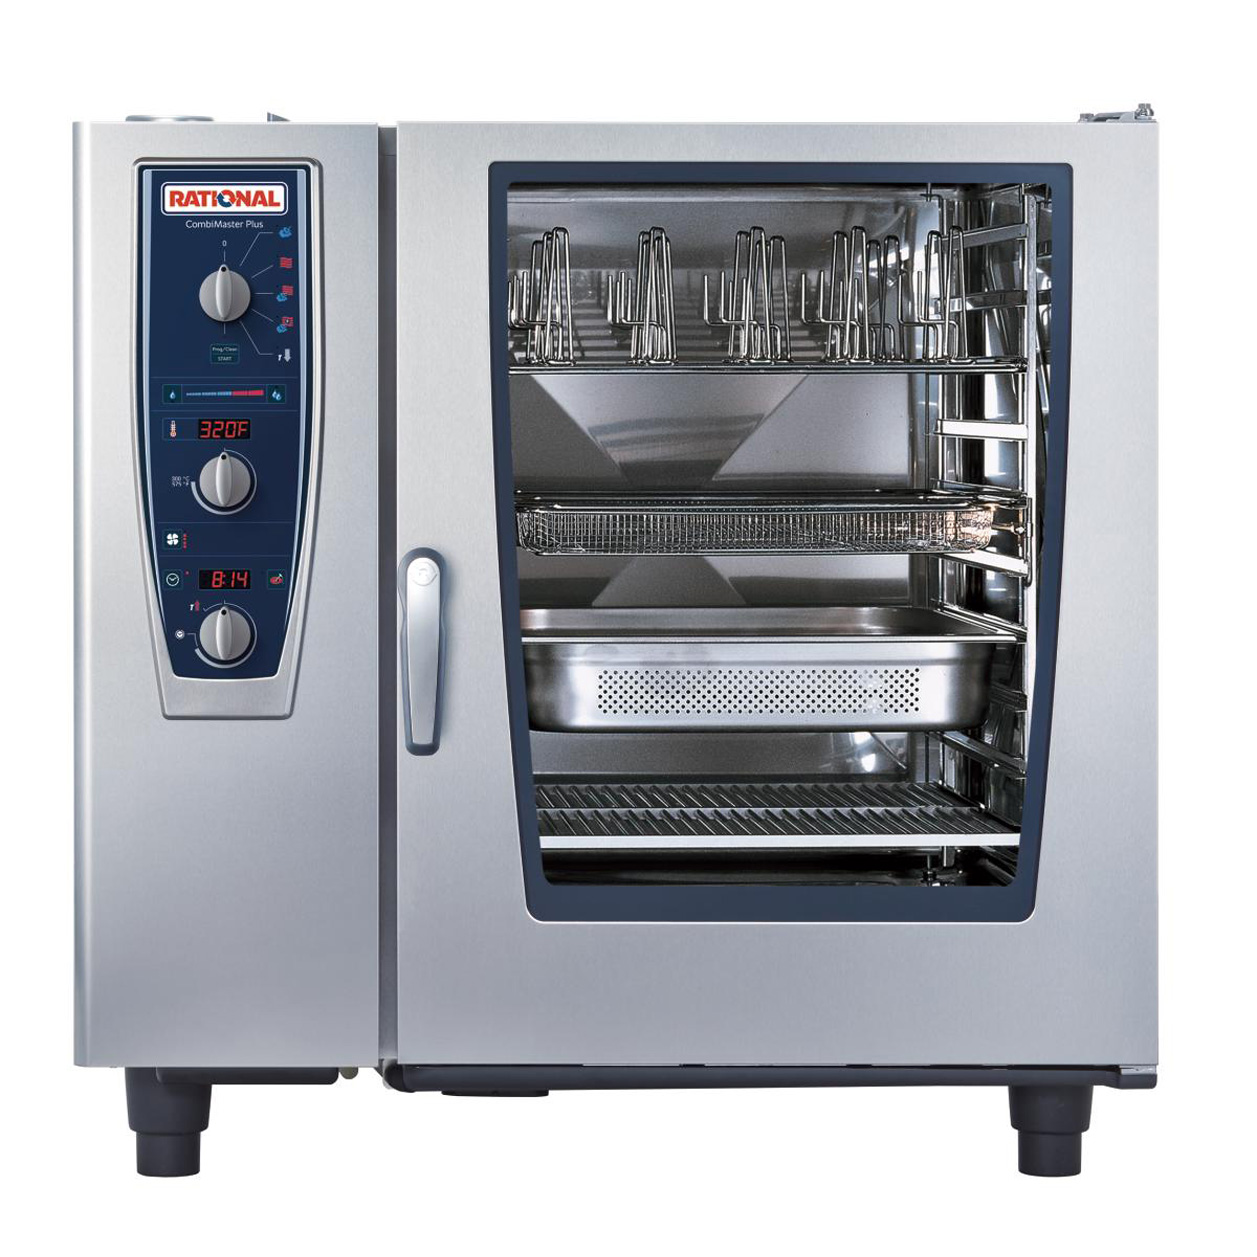 RATIONAL B129206.19E202 combi oven, gas